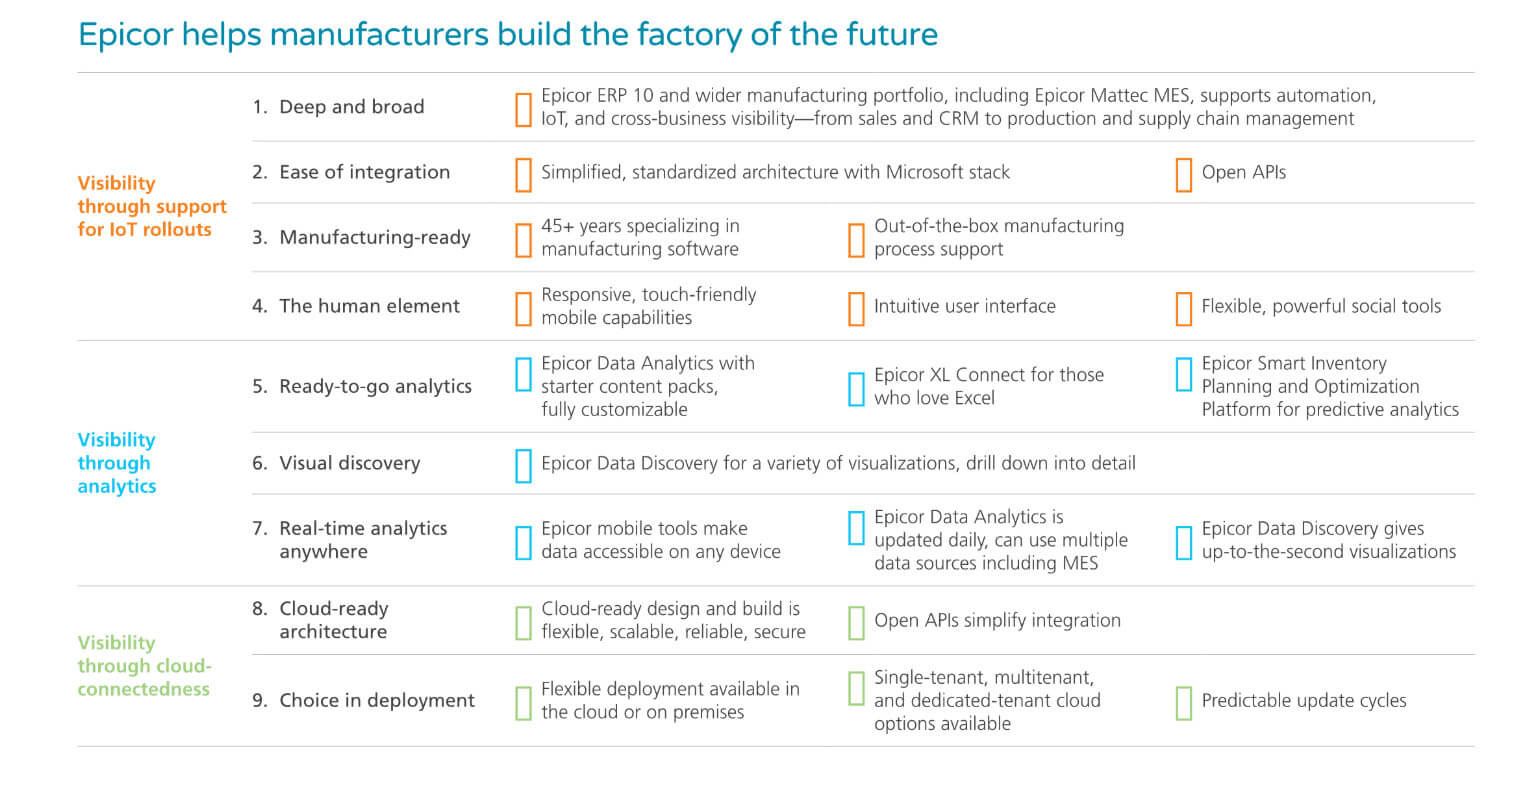 Epicor helps manufacturers build the factory of the future